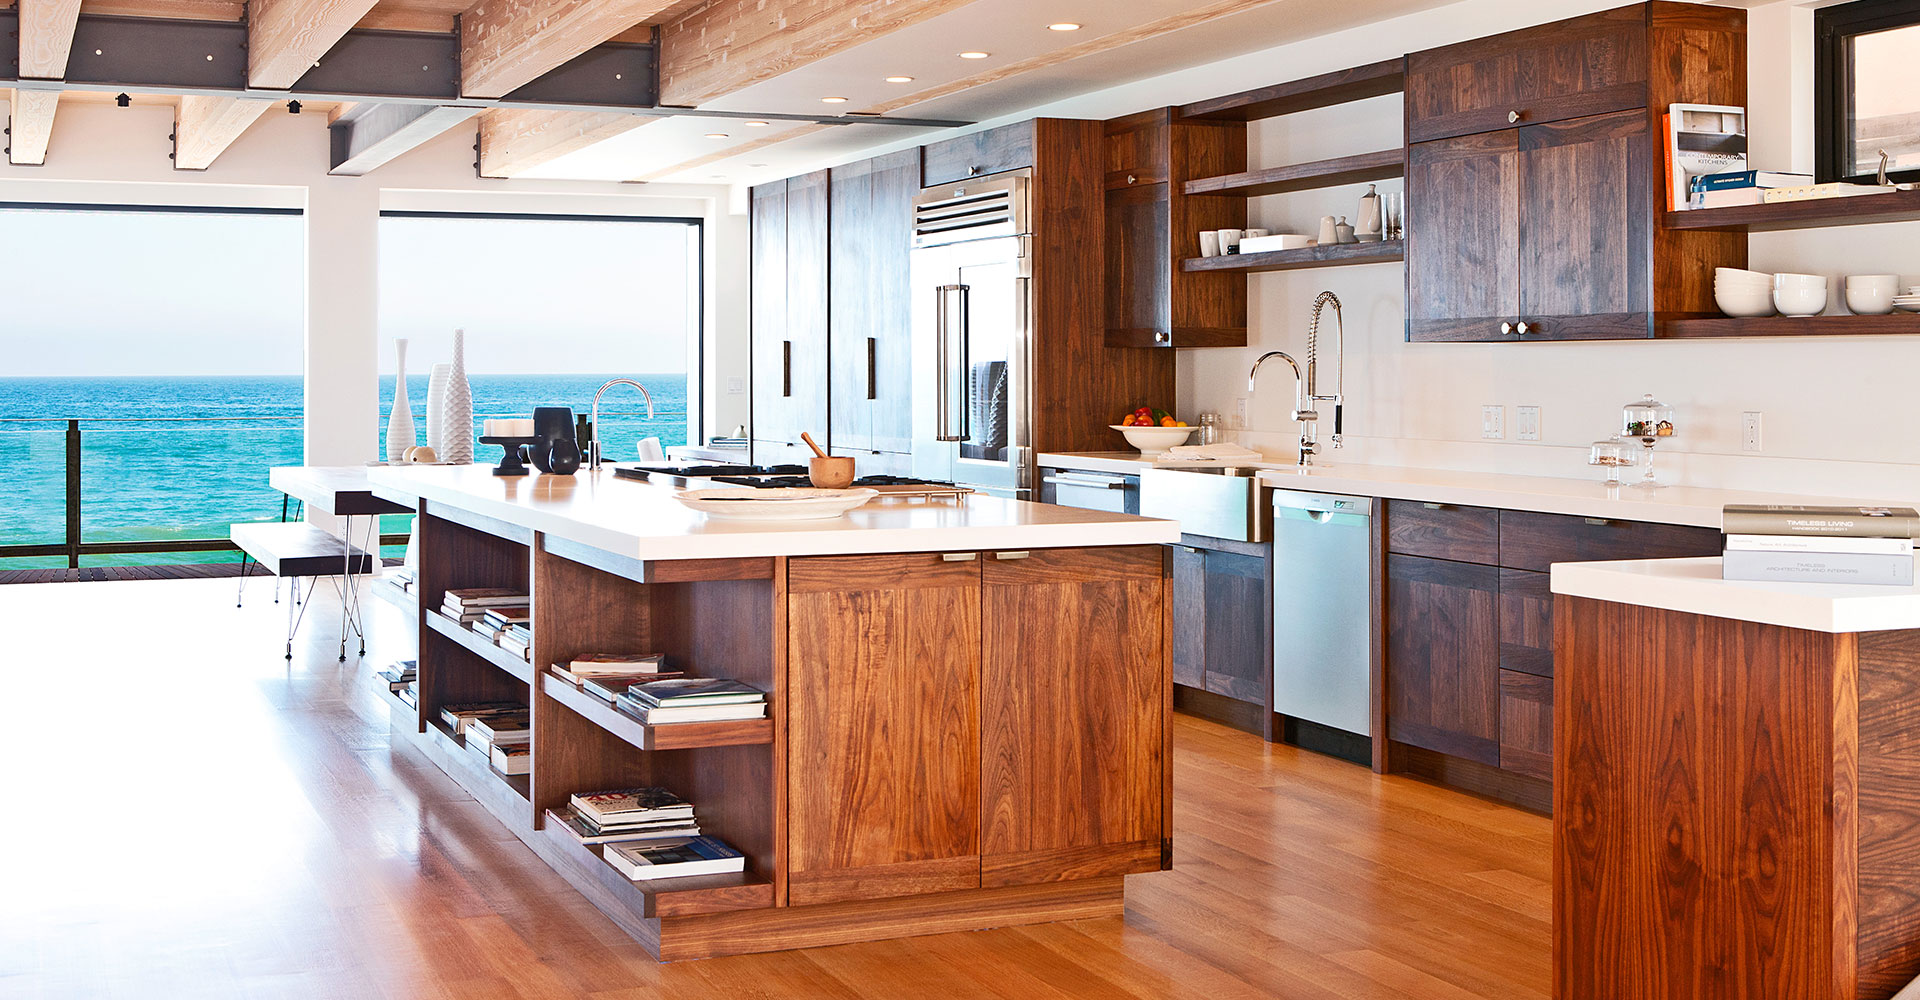 Los Angeles Custom Cabinetry with Ocean View